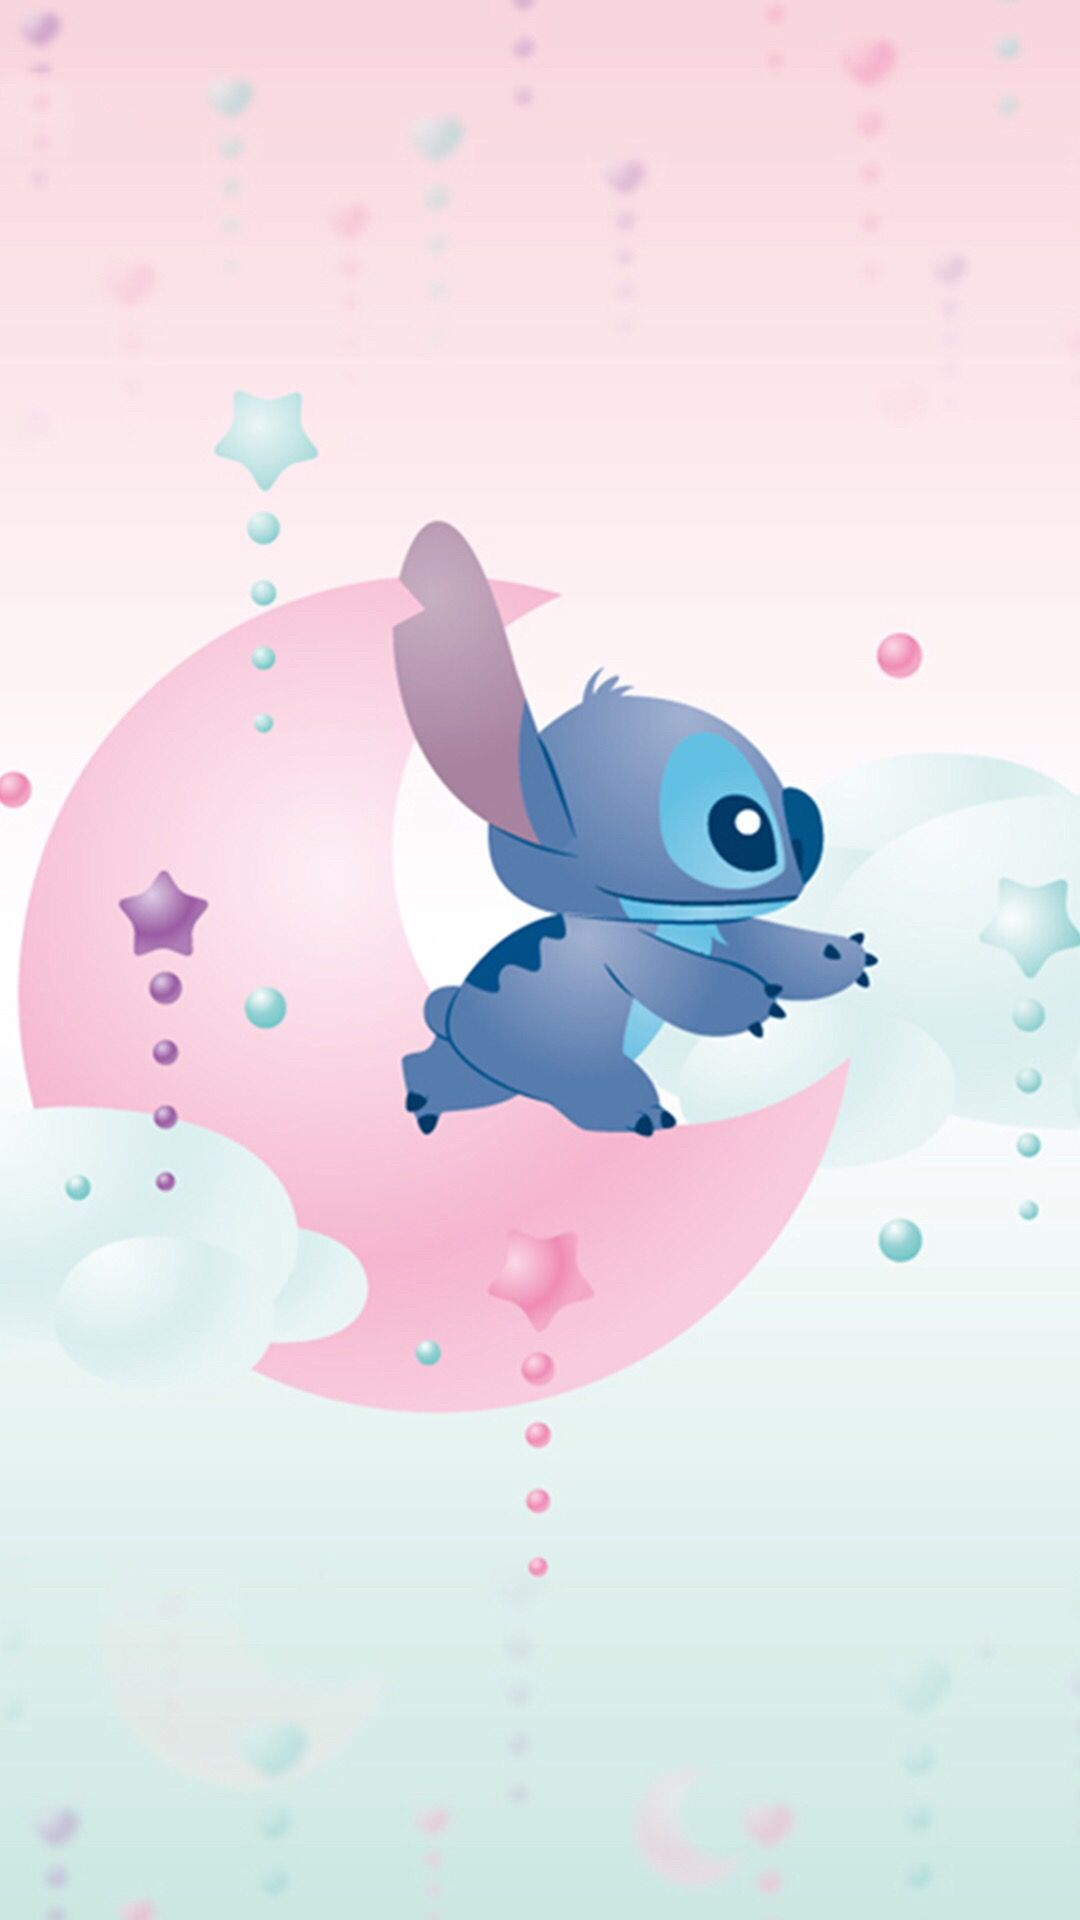 Wallpaper Disney wallpaper, Disney phone wallpaper, Cute